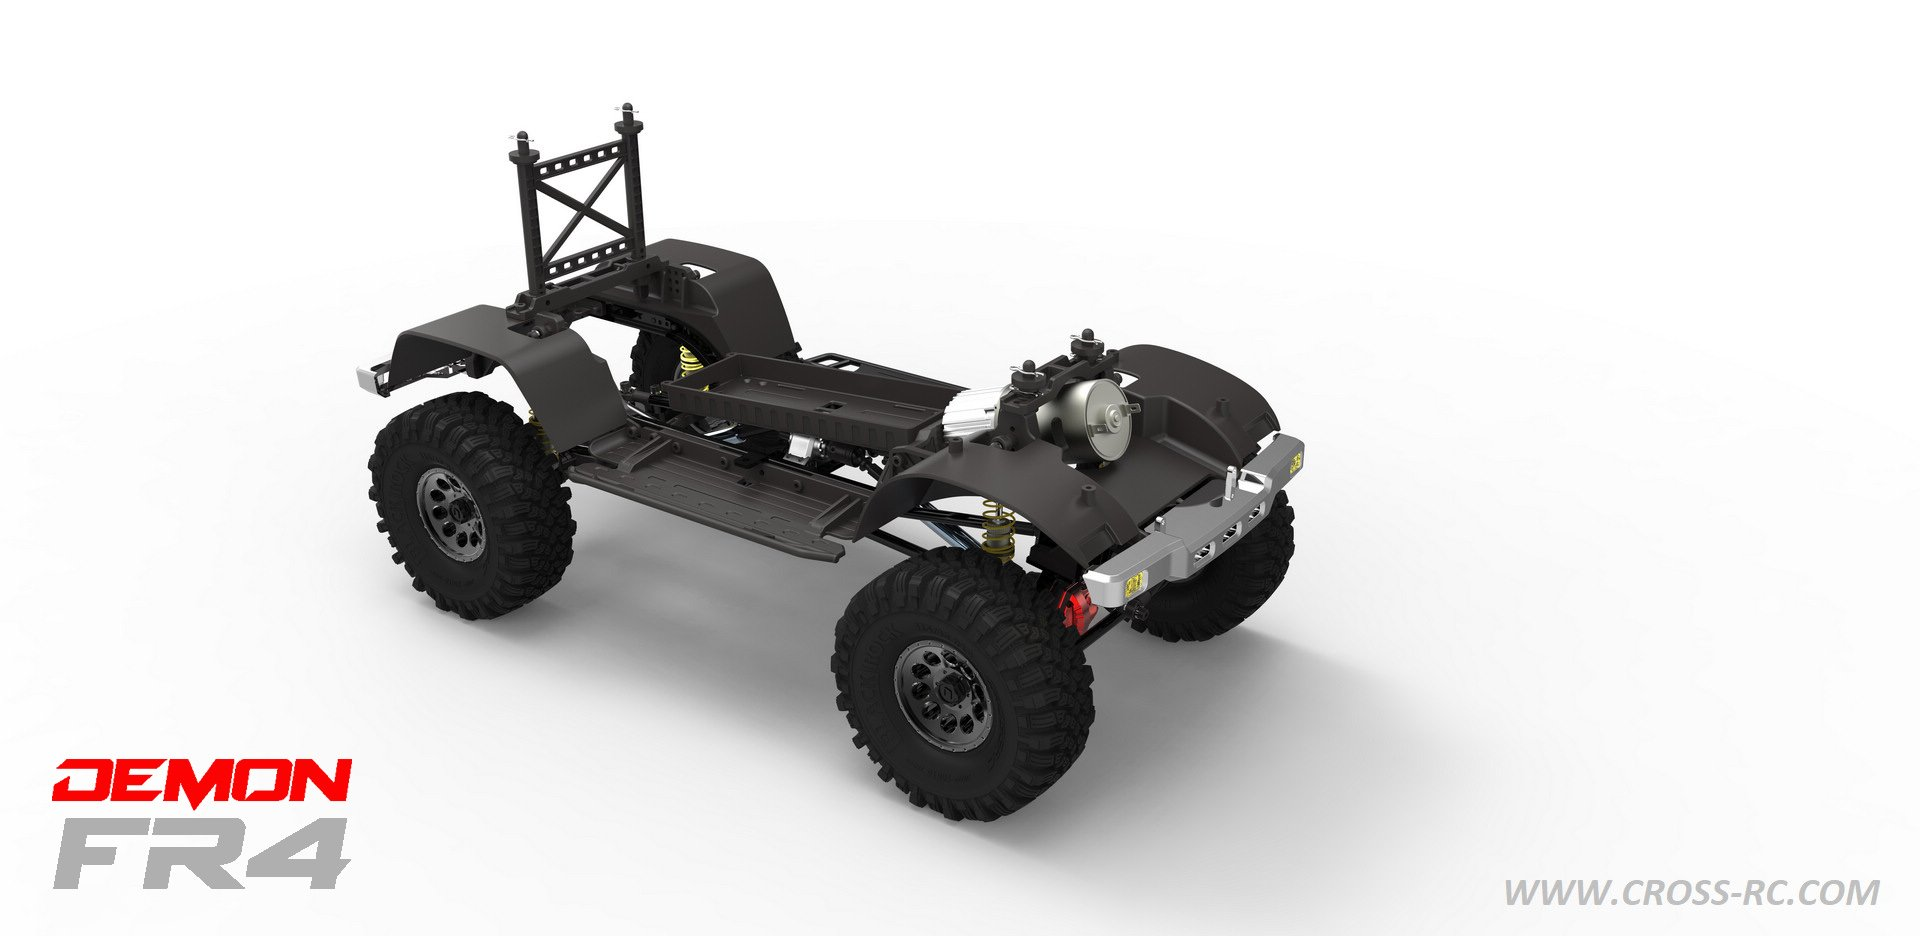 Cross RC FR4 Crawler Kit - Chassis